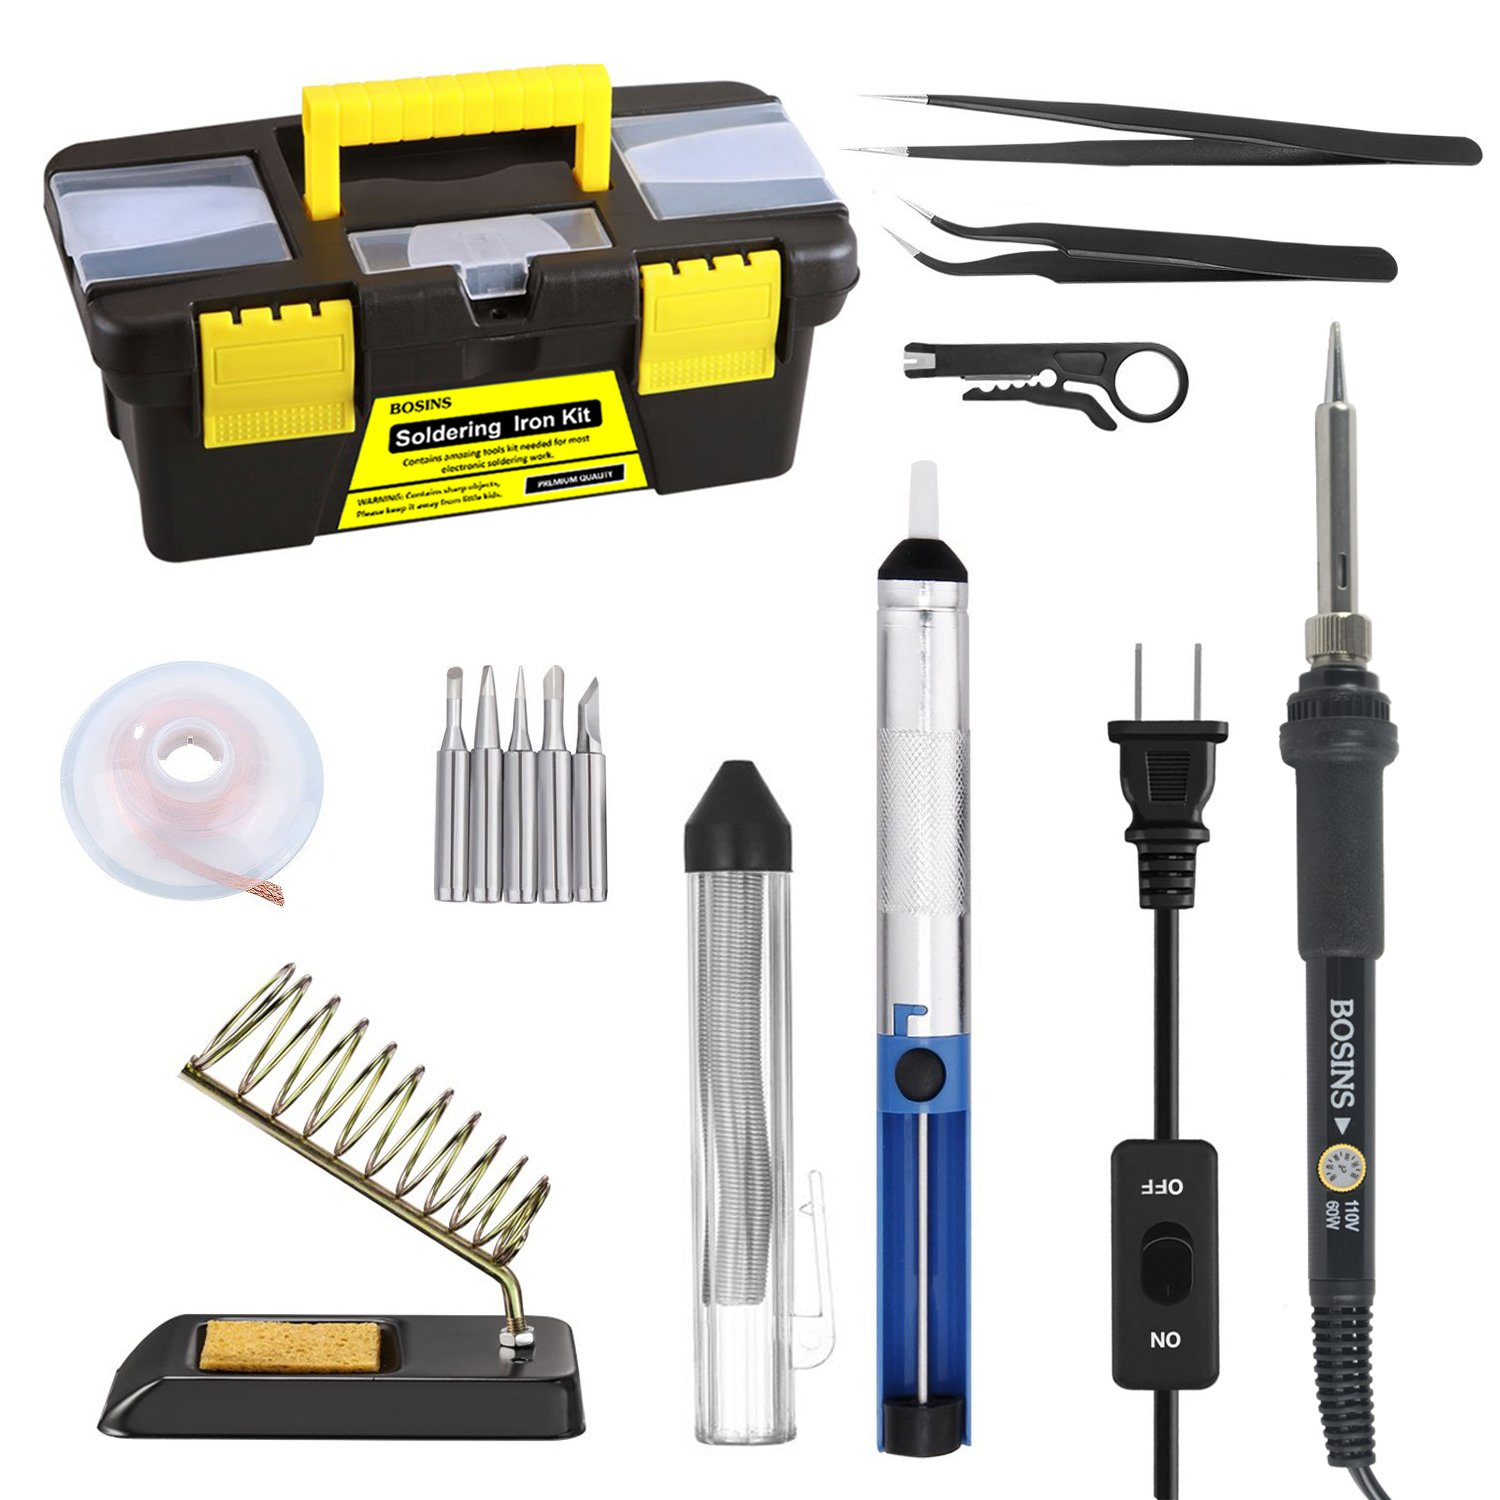 Soldering Iron Kit, 60W Adjustable Temperature Solder Kit with On/Off Switch, 5pcs Soldering Tips, Solder Sucker, Solder Wire, Solder Wick, Wire Stripper Cutter, 2pcs Anti-static Tweezers, Stand wit